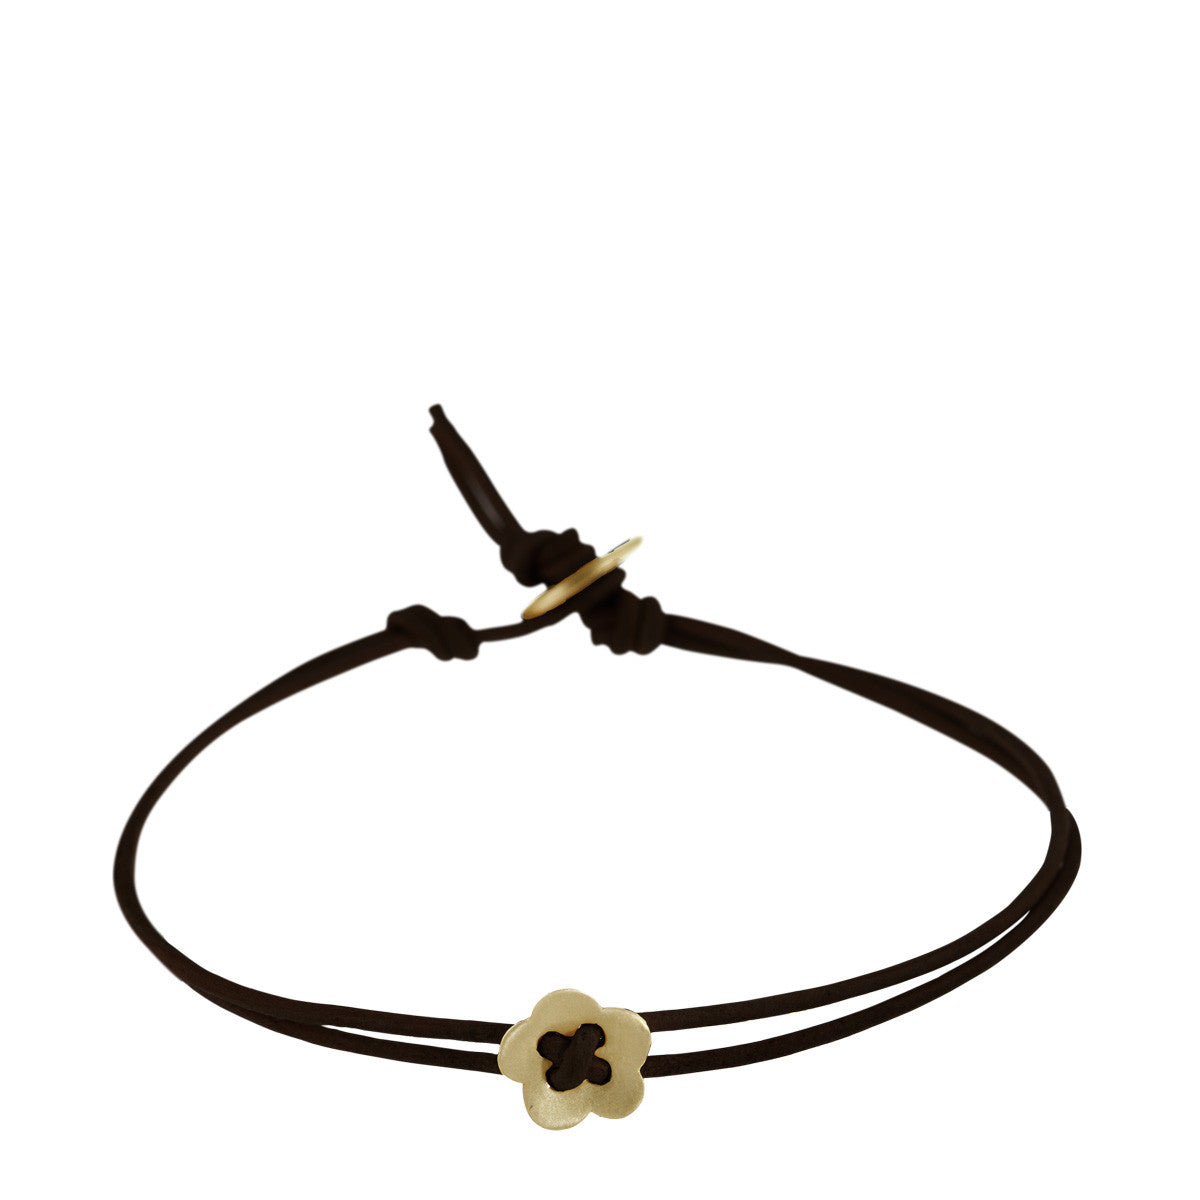 10K Gold Small Single Flower Bracelet on Black Cord